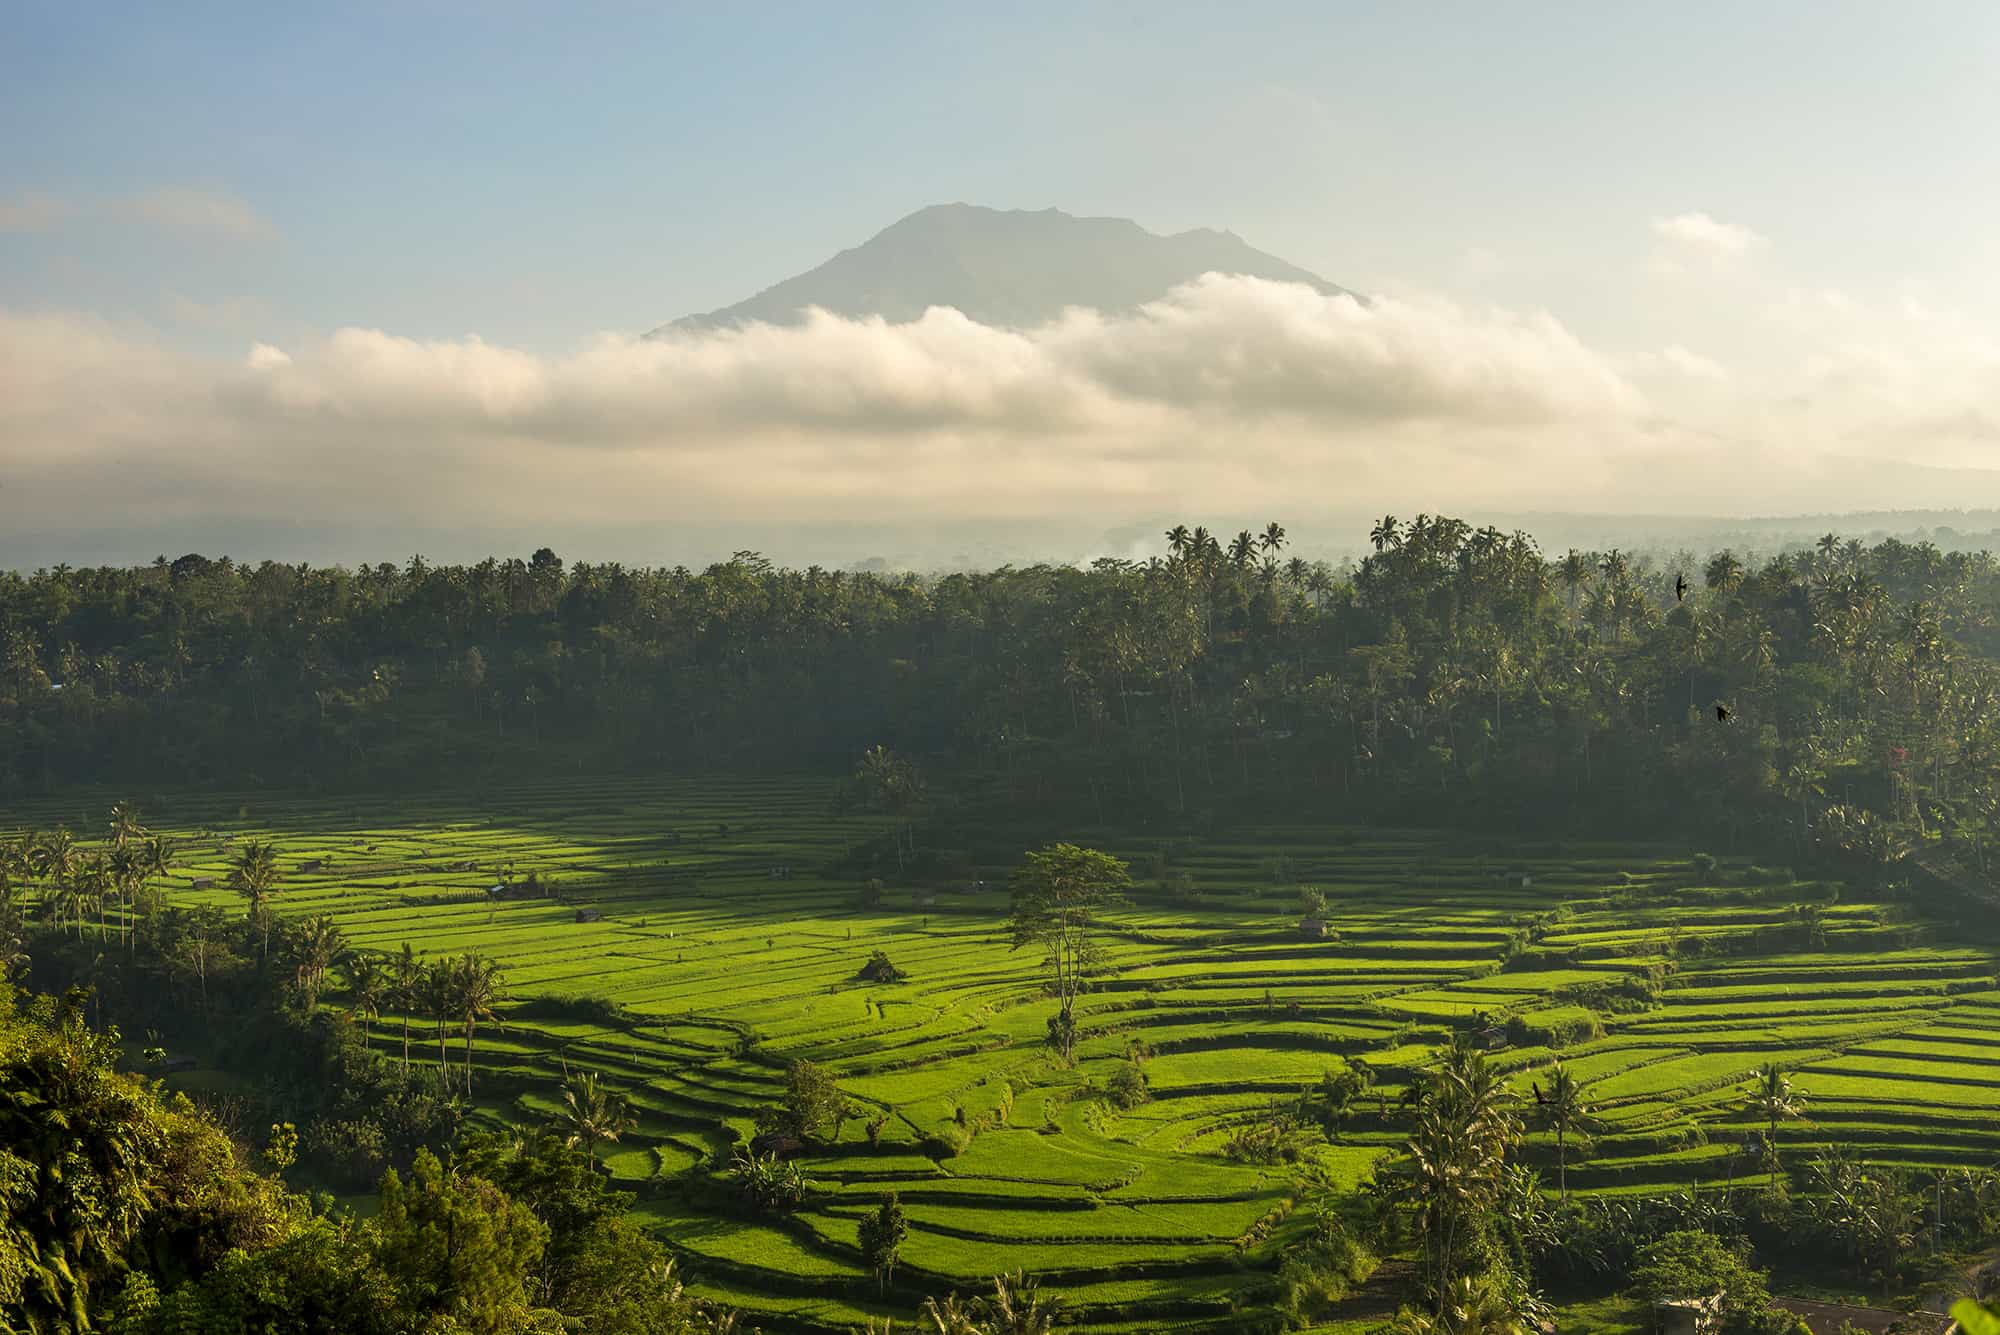 Mahagiri Rice paddy in the morning with clouds covering the base of a hill in the distance